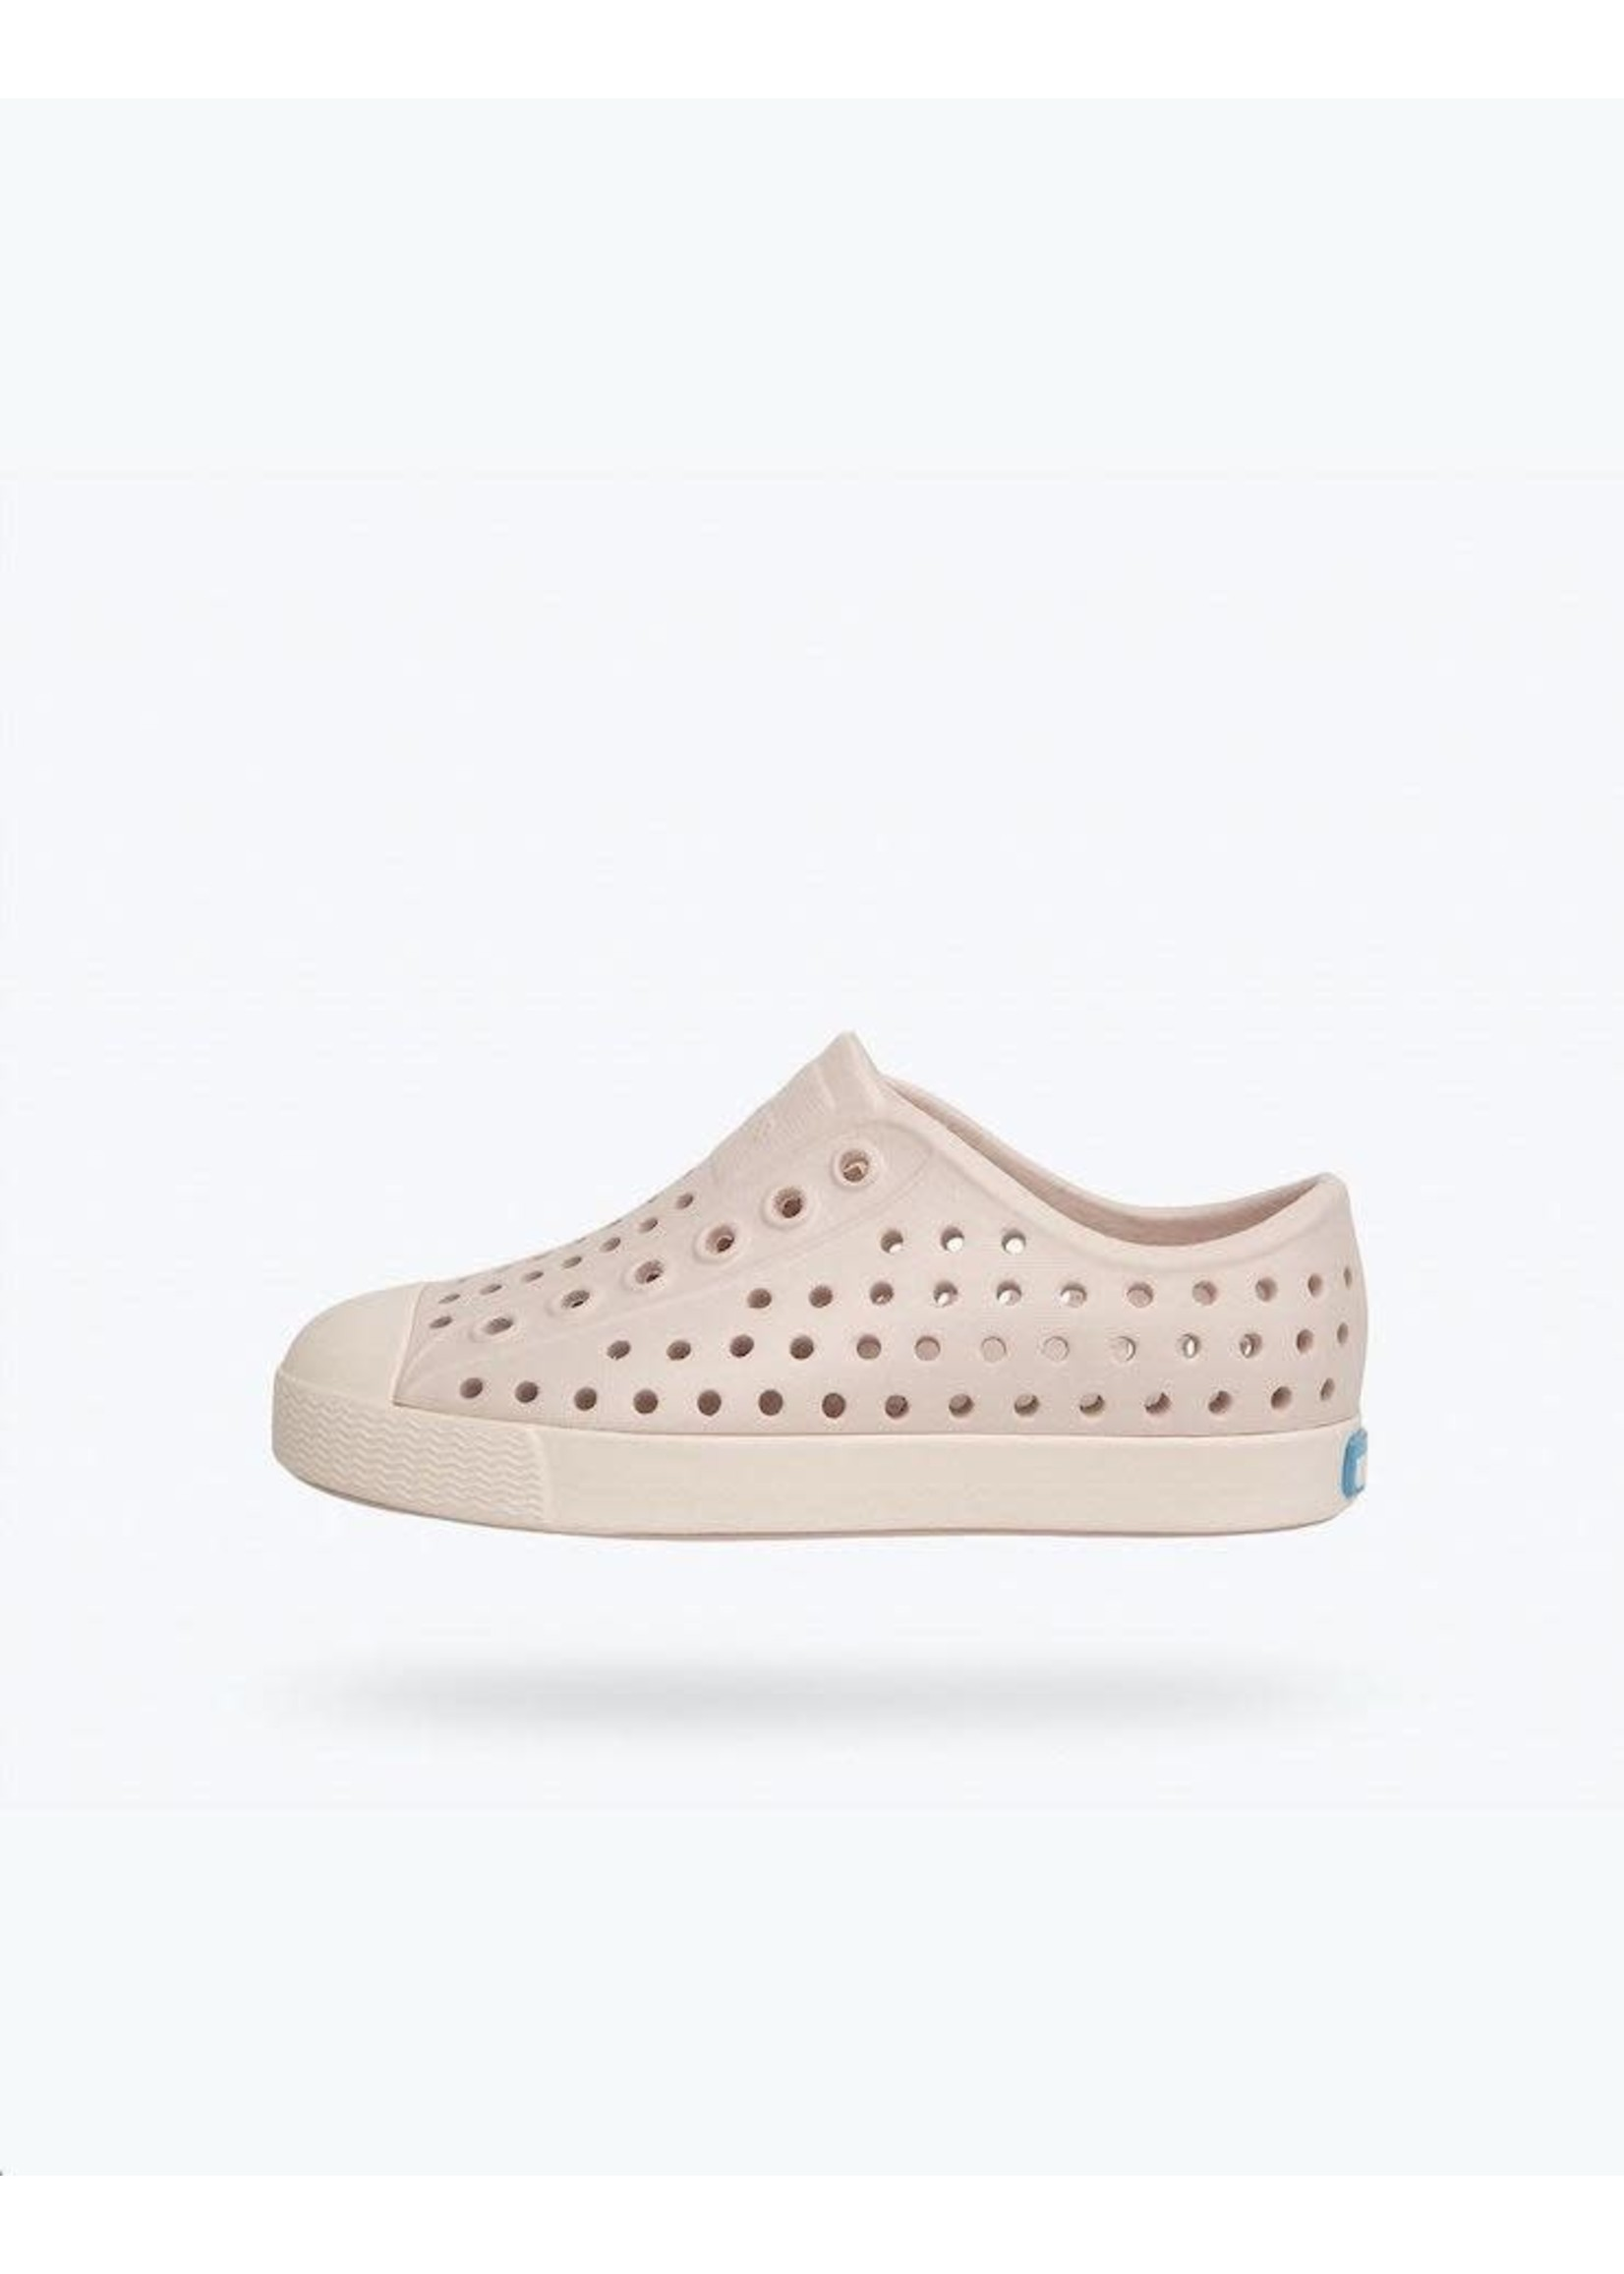 Native Shoes Native Shoes, Jefferson Youth / Junior Dust Pink/ Lint Pink